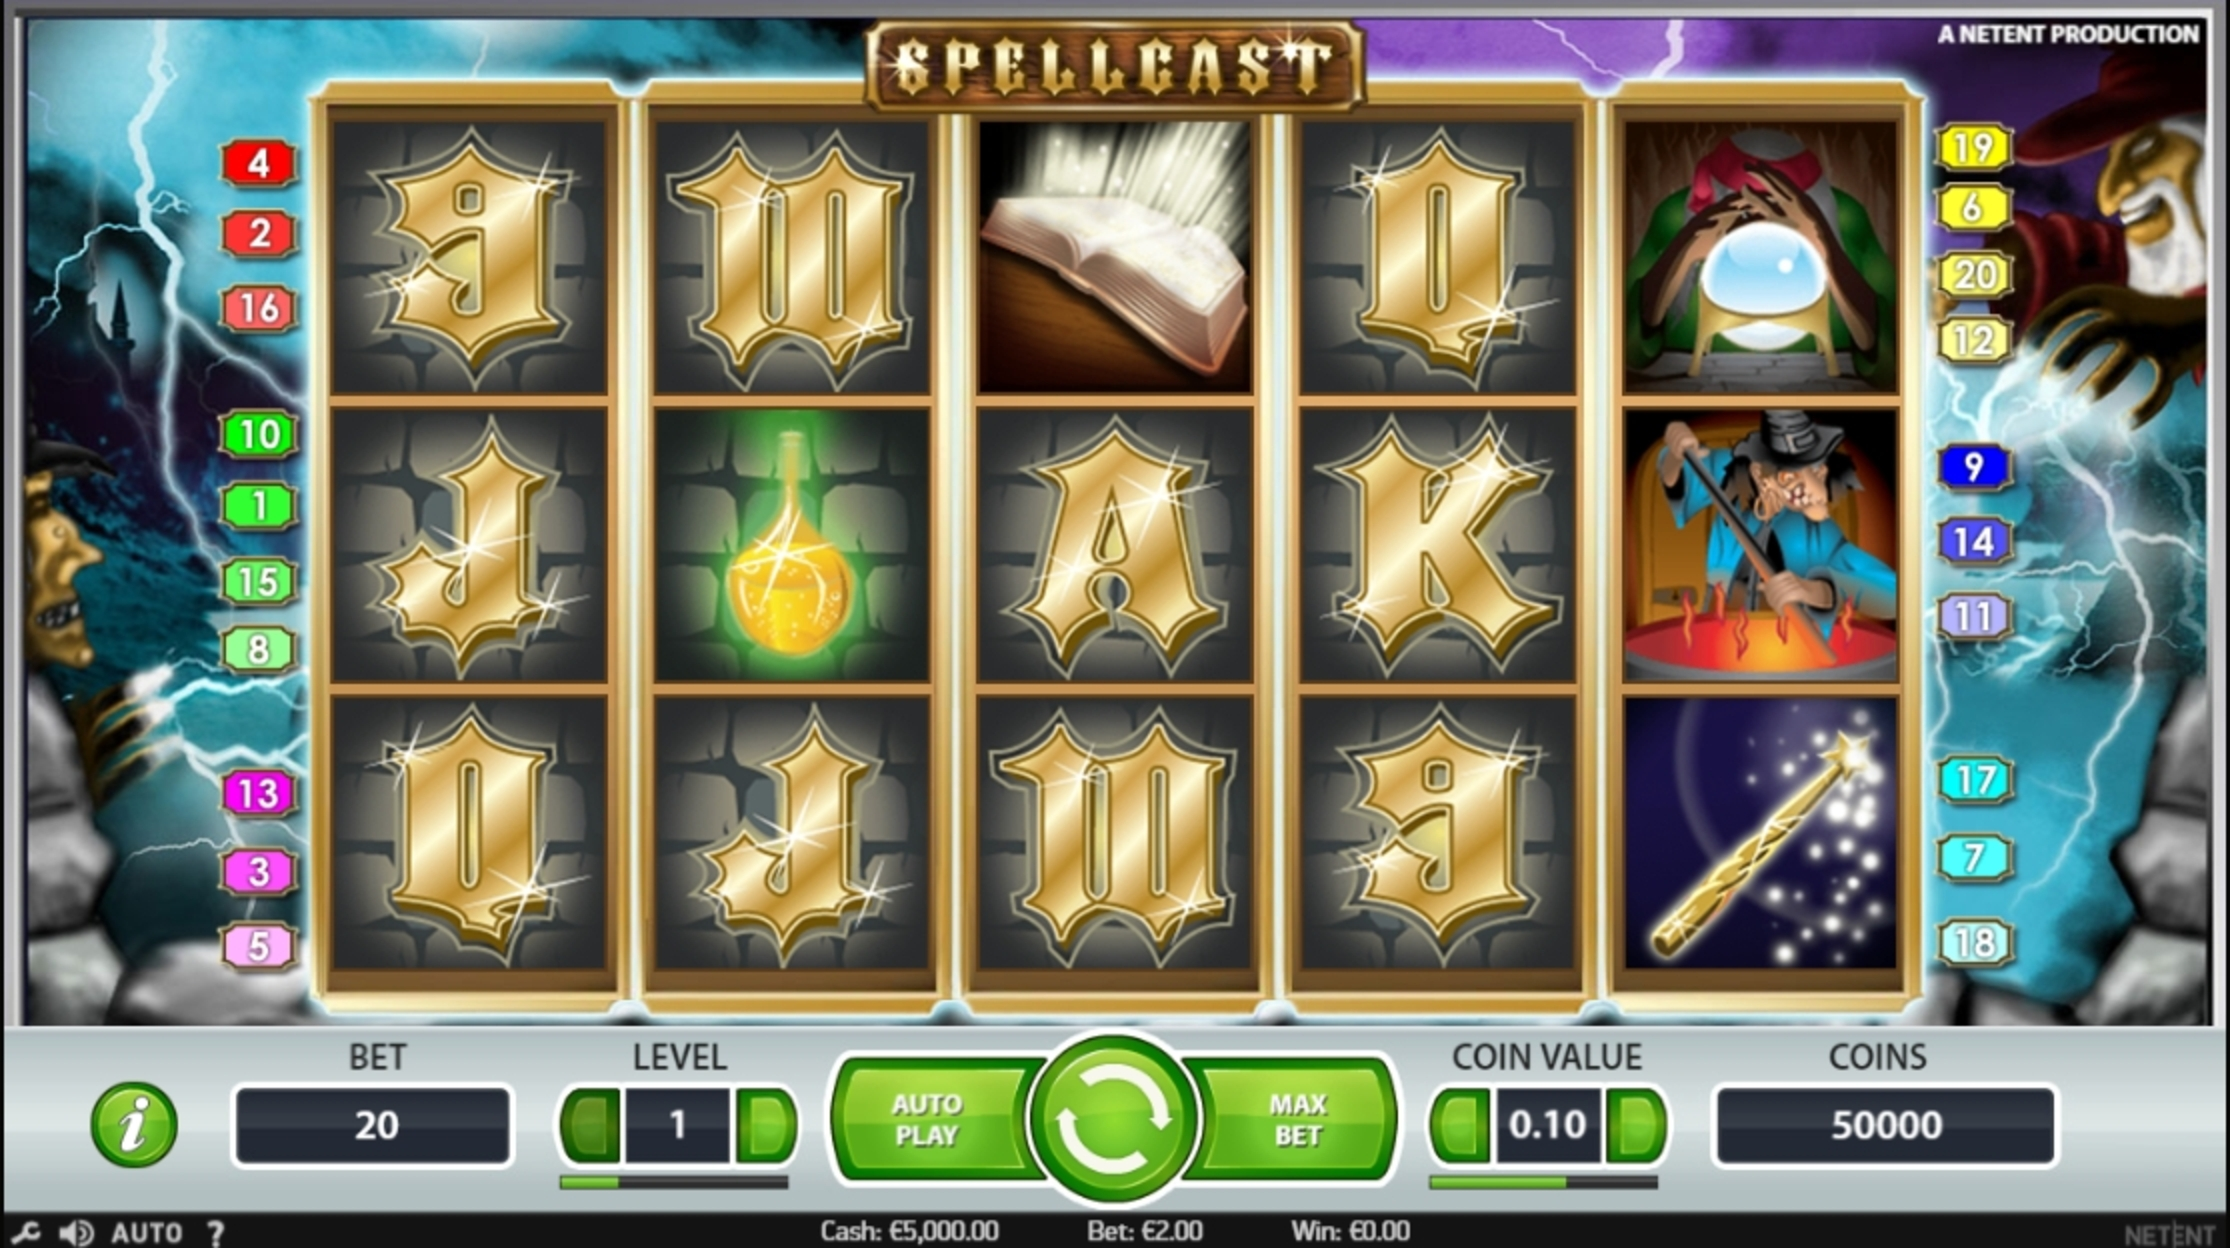 Reels in Spellcast Slot Game by NetEnt